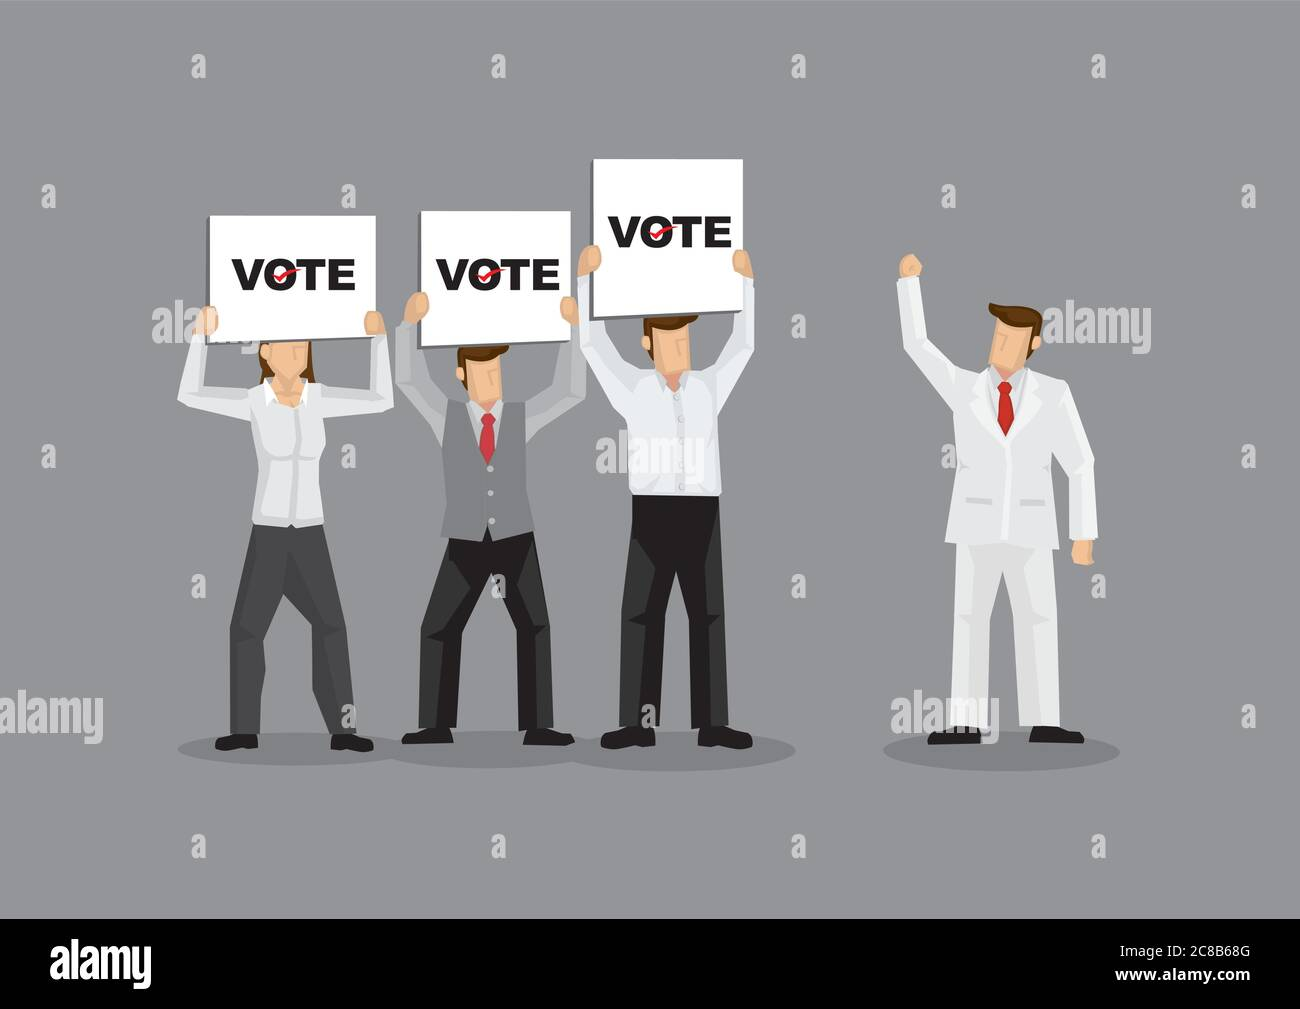 Vector illustration of rich man in white suit garnering support from fans and voters holding signs. Vector illustration on voters support for candidat Stock Vector